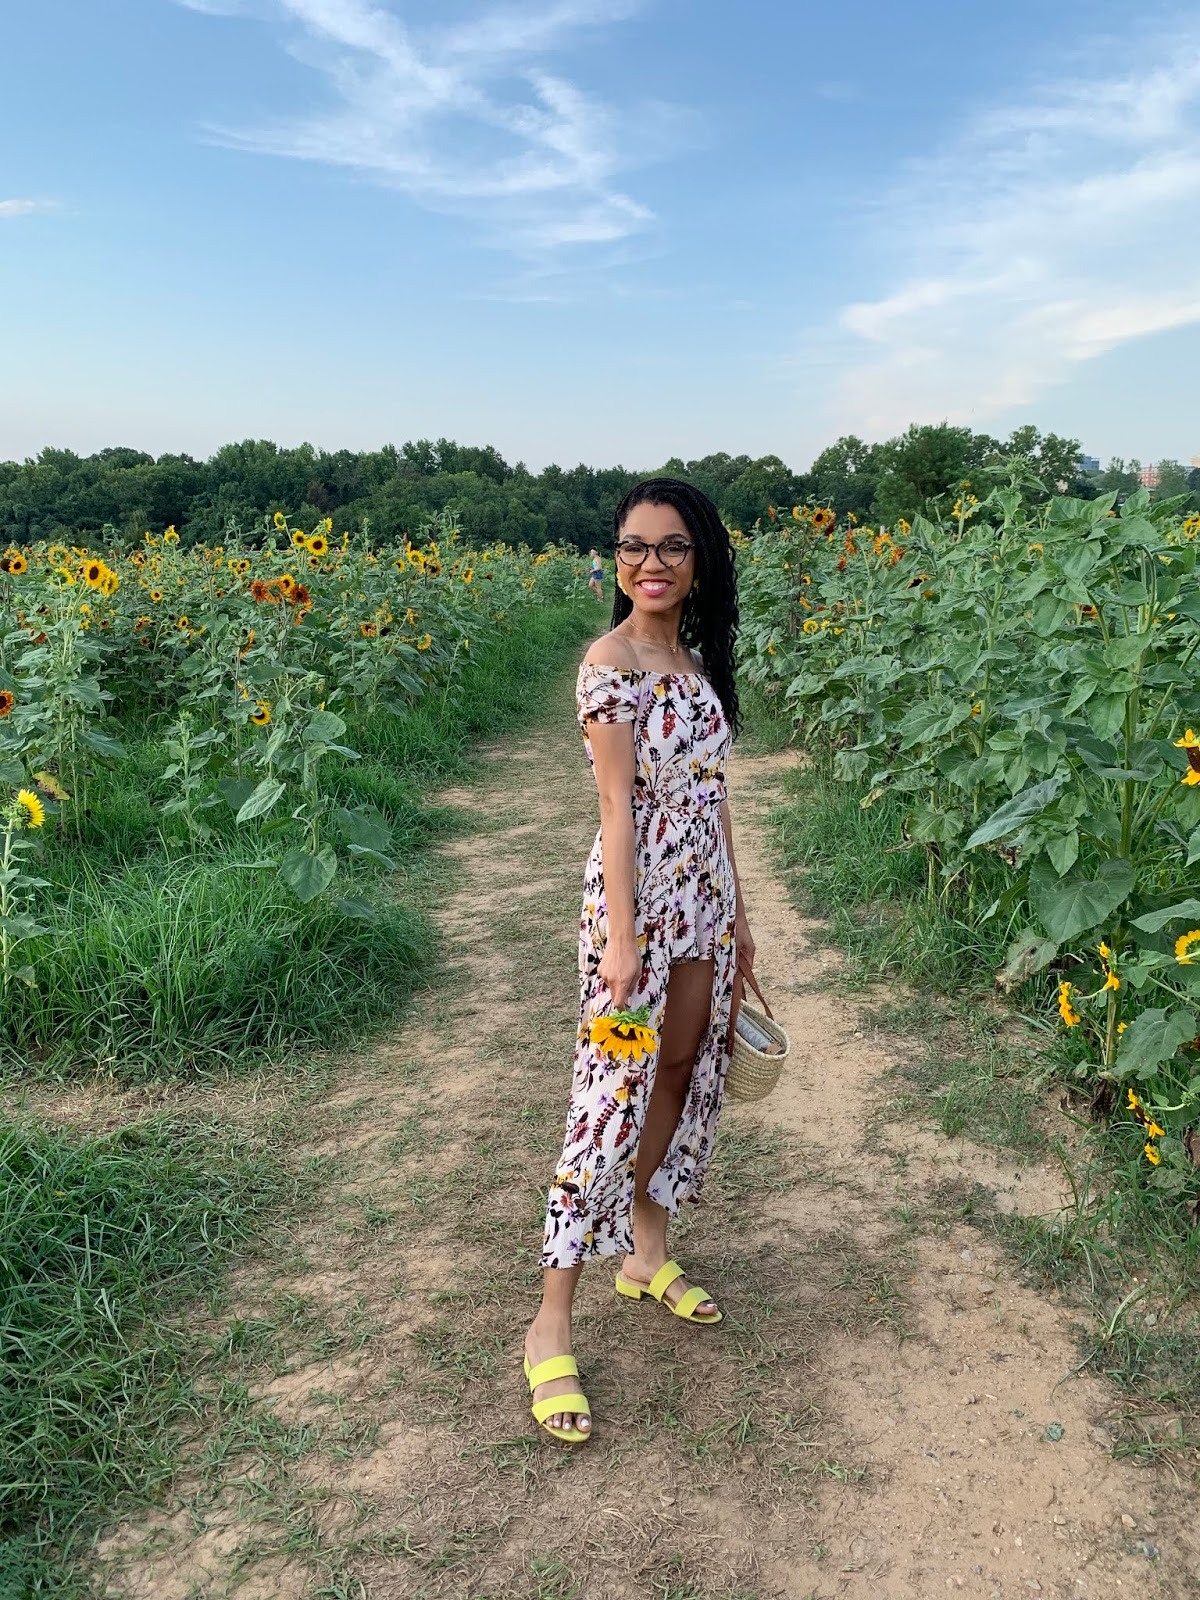 girl holding sunflower, sunflower photoshoot, sunflower field, flower jumpsuit, straw bag, summertime outfit, girl standing